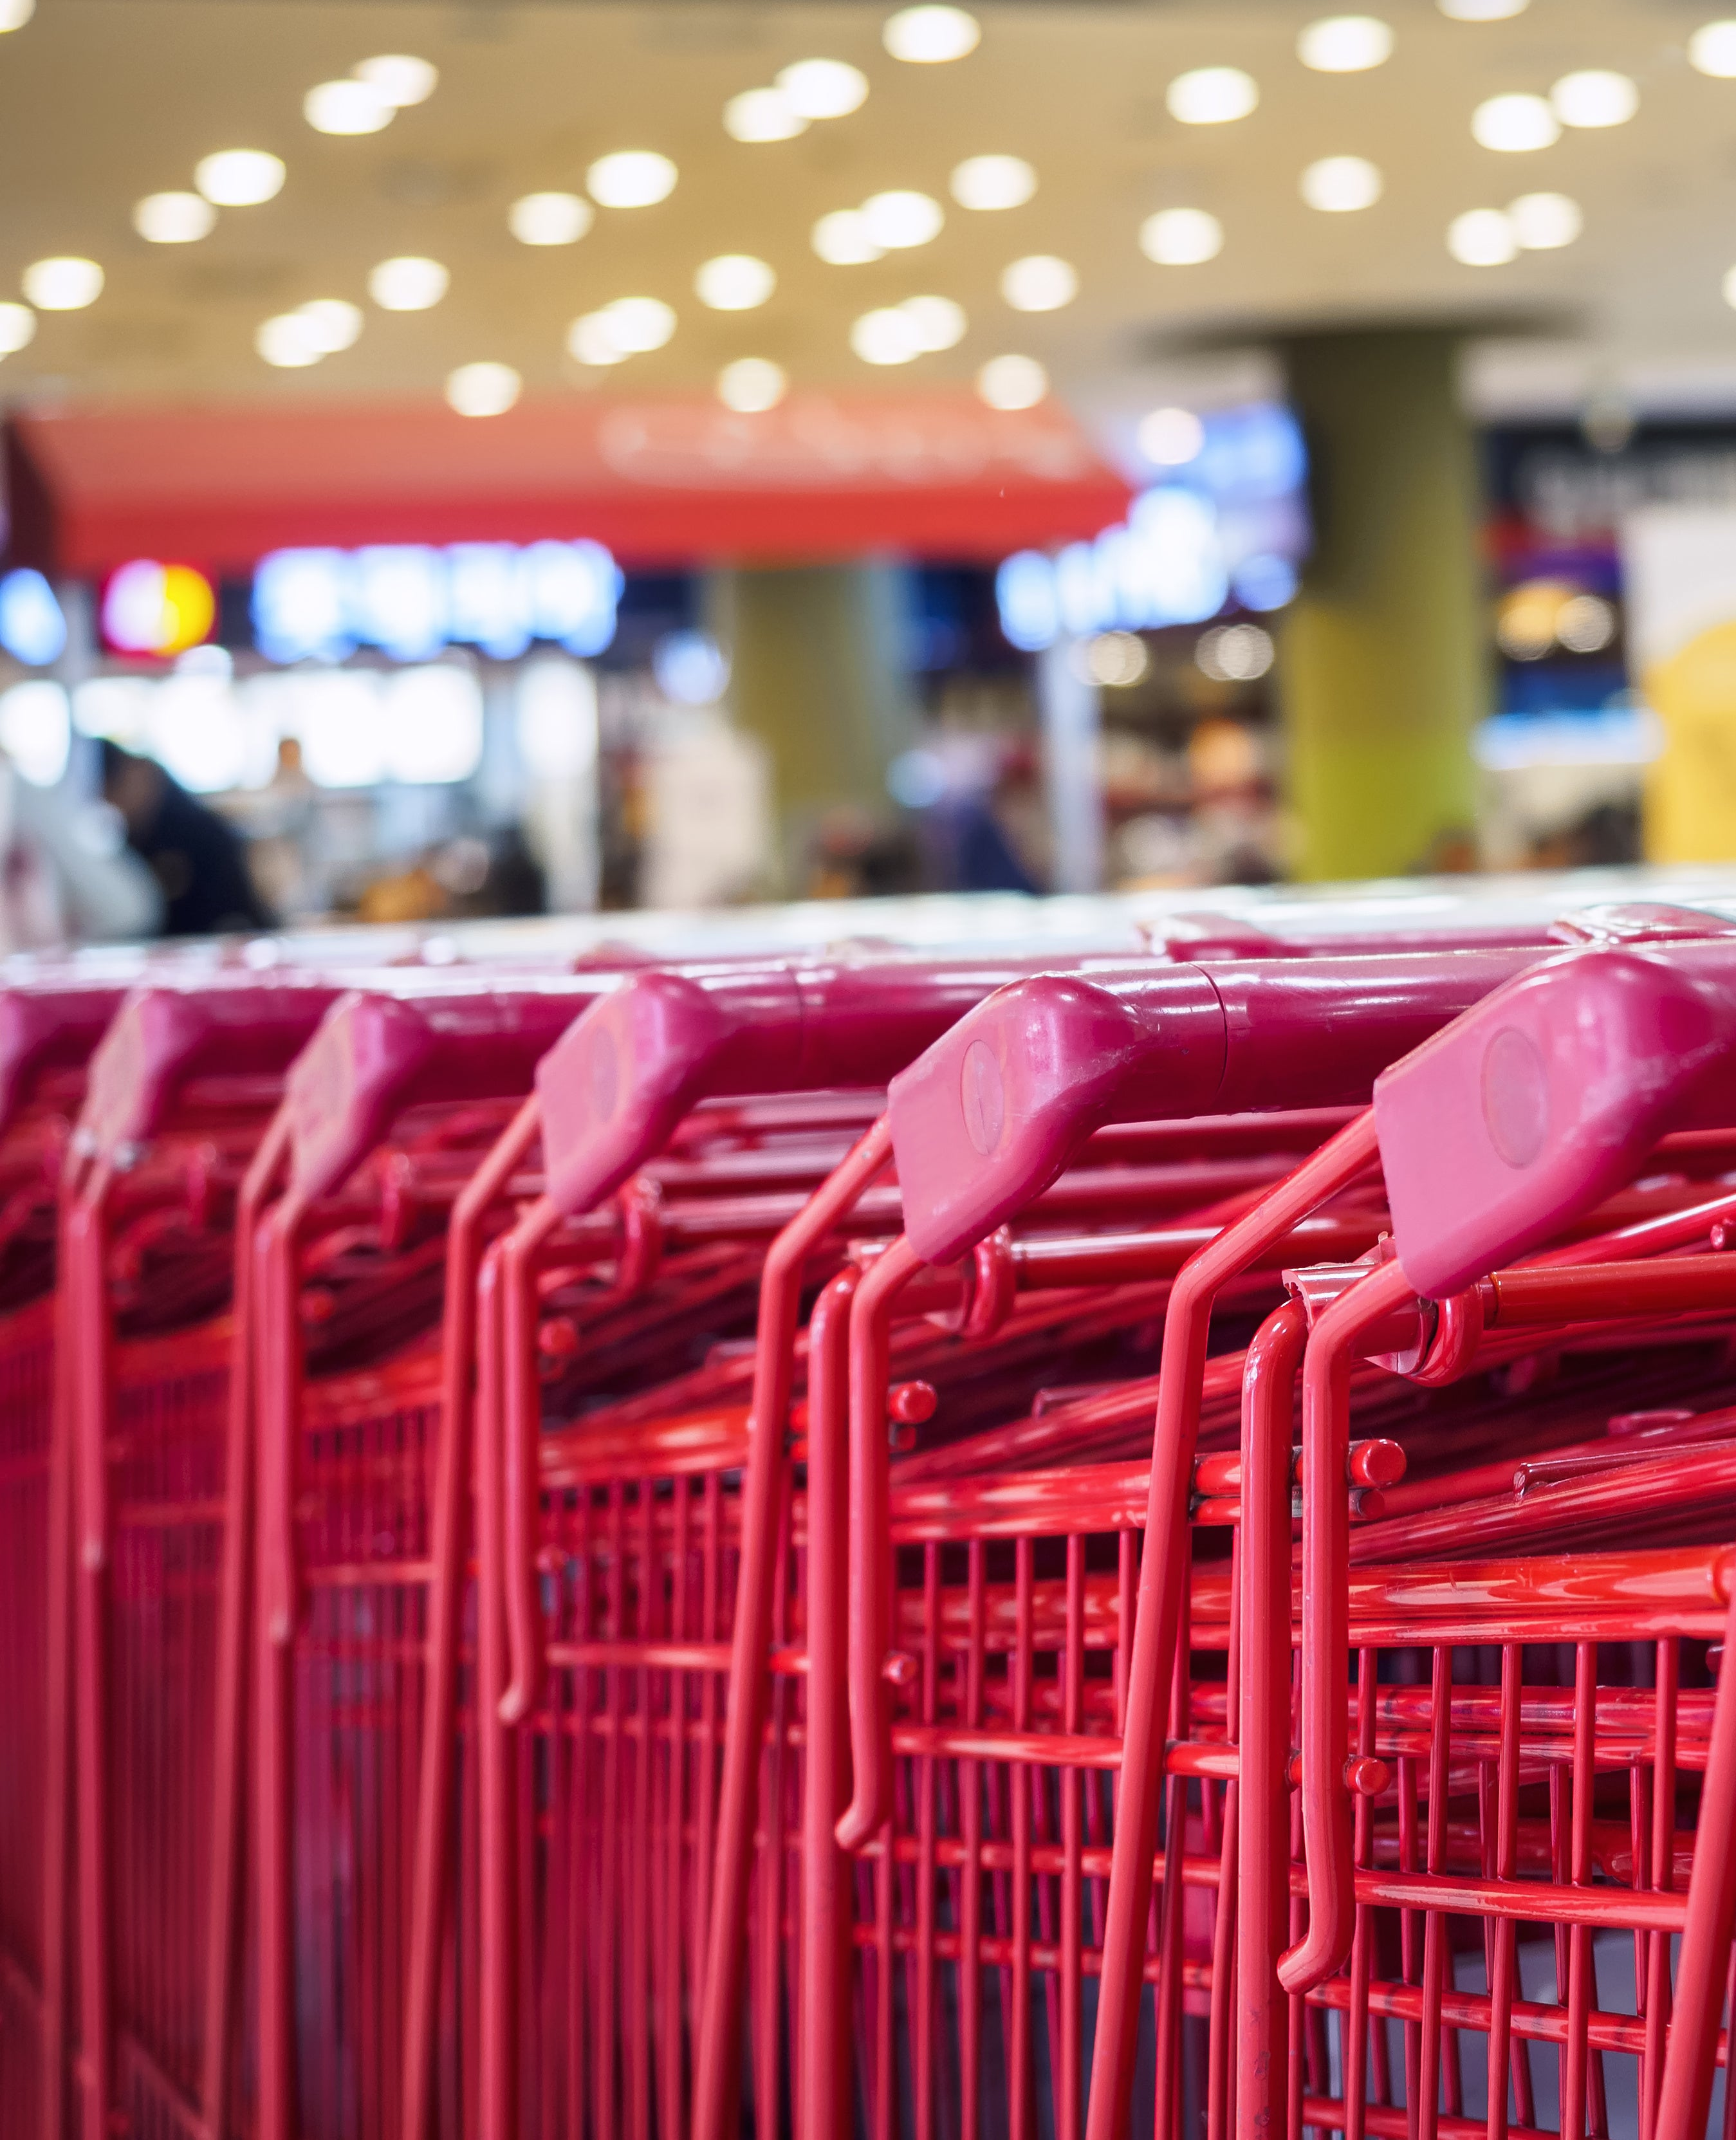 Supermarket Trolley Shopping Retail Business concept